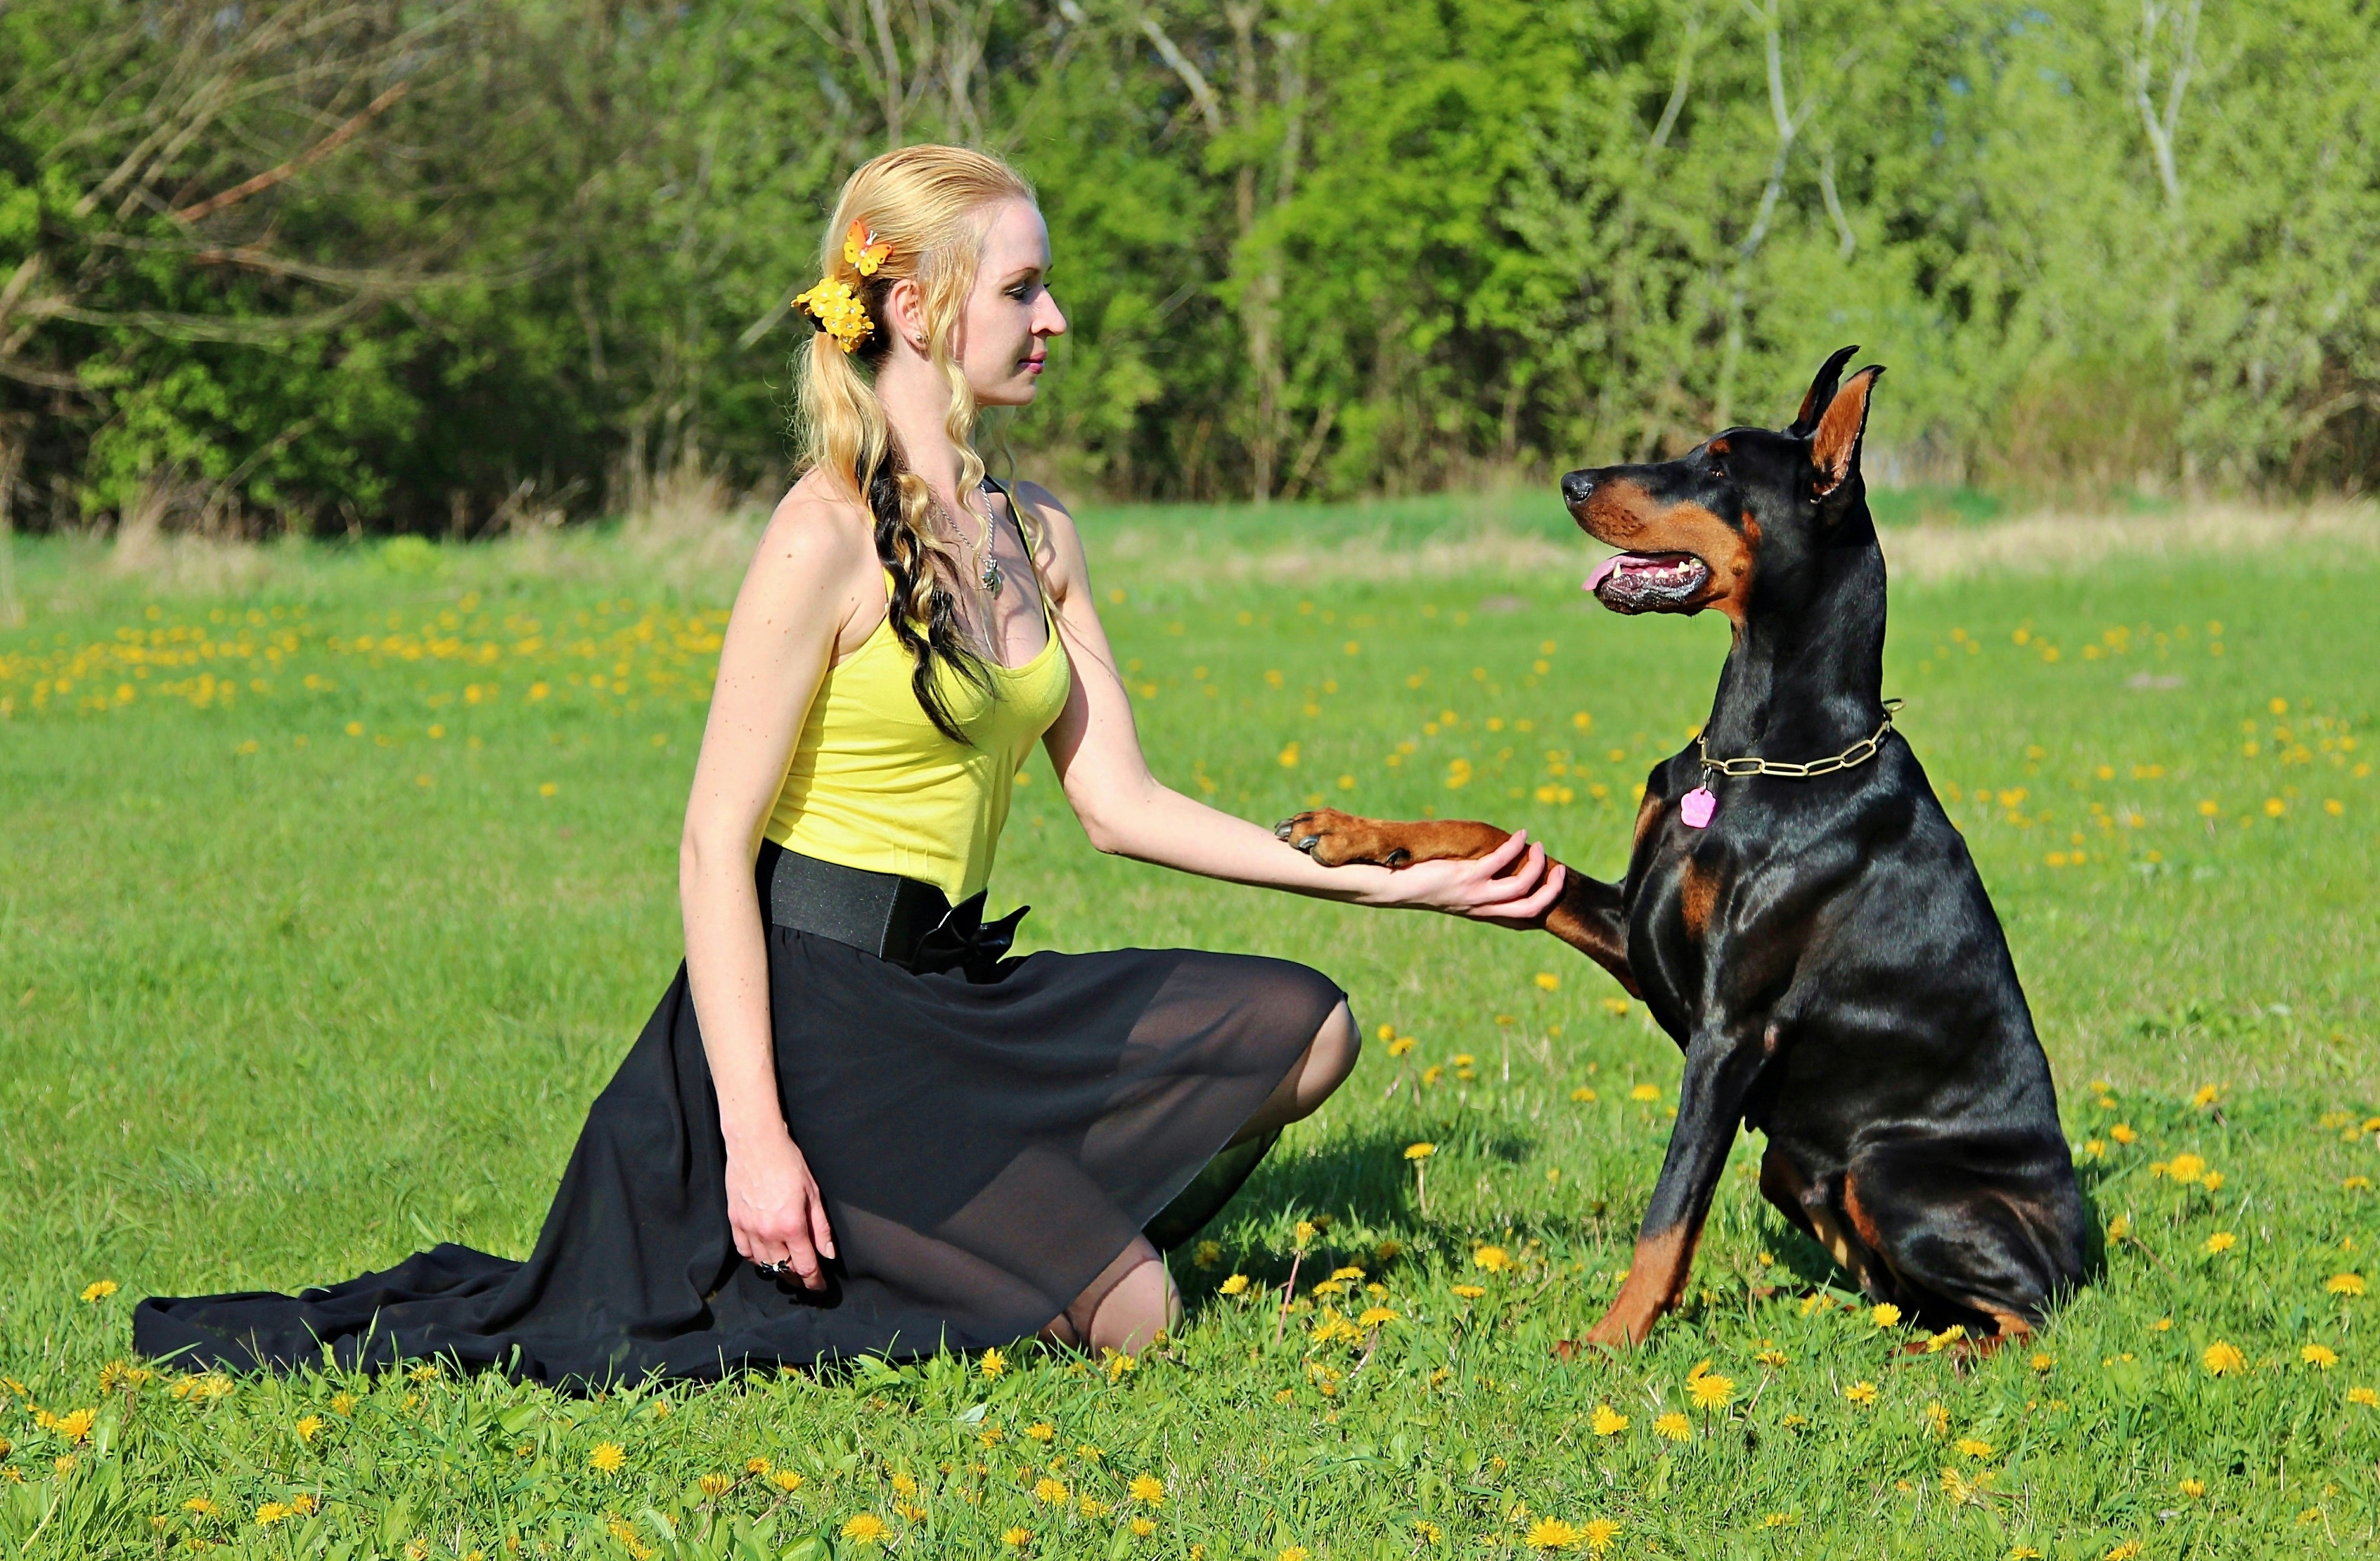 girl kneeling while holding sitting dog's paw